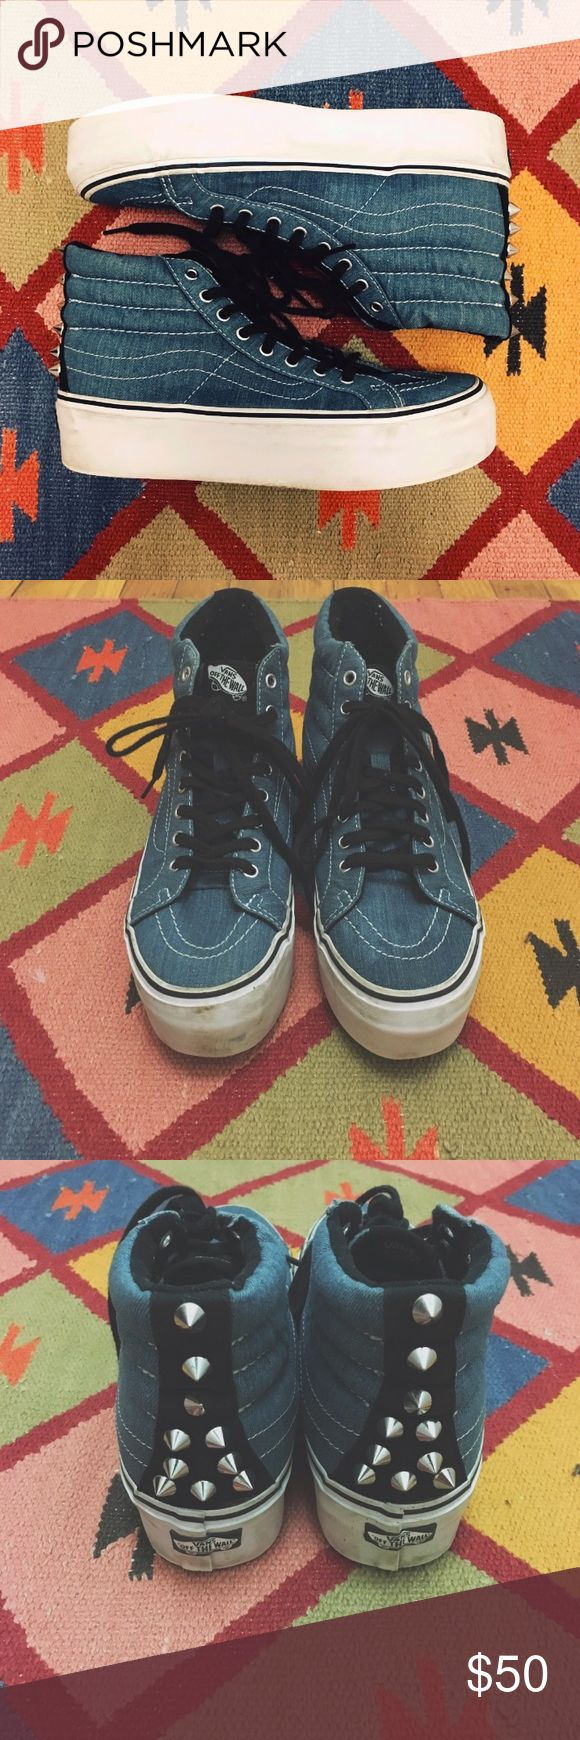 4414c11444f Buy vans shoes sale size 8